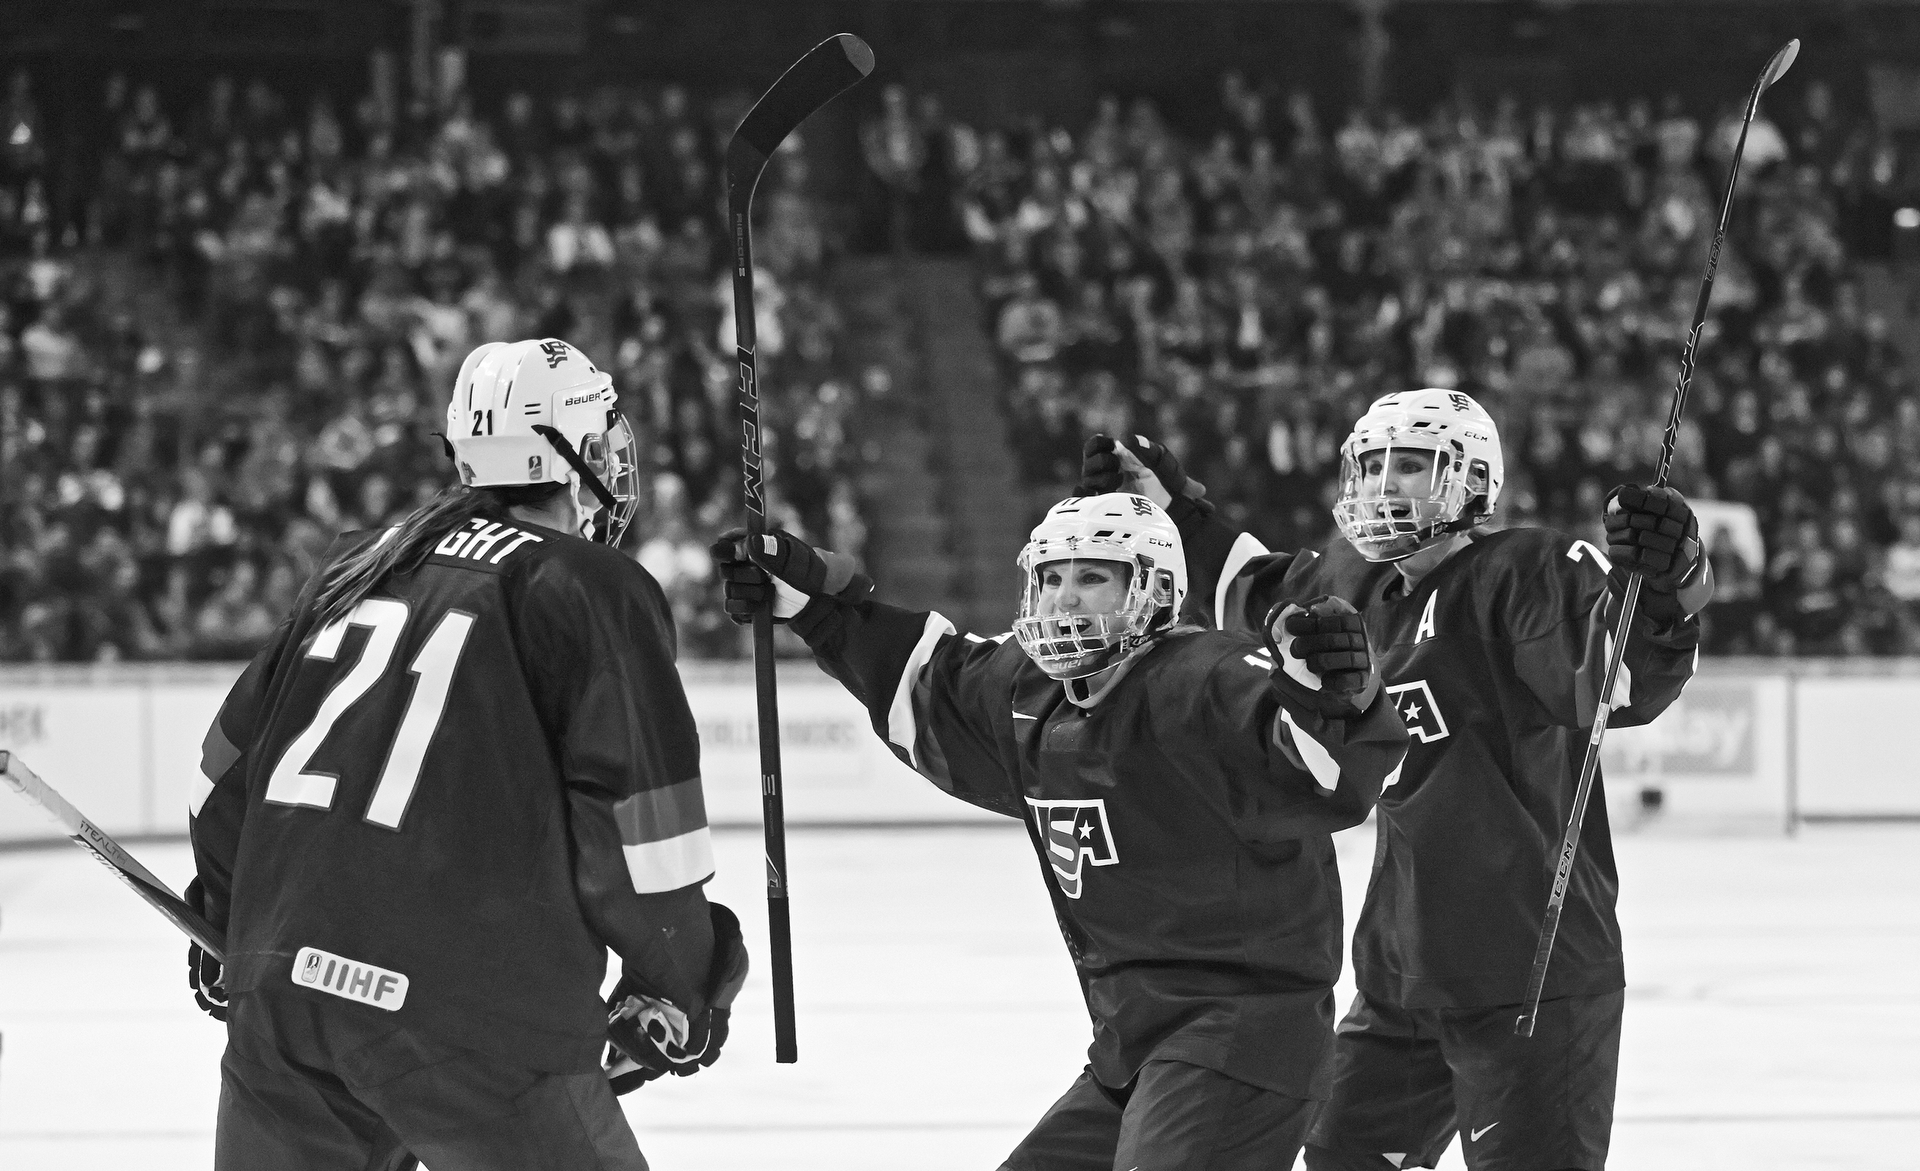 USA Women' Hockey (Photo by David E. Klutho/The Players' Tribune